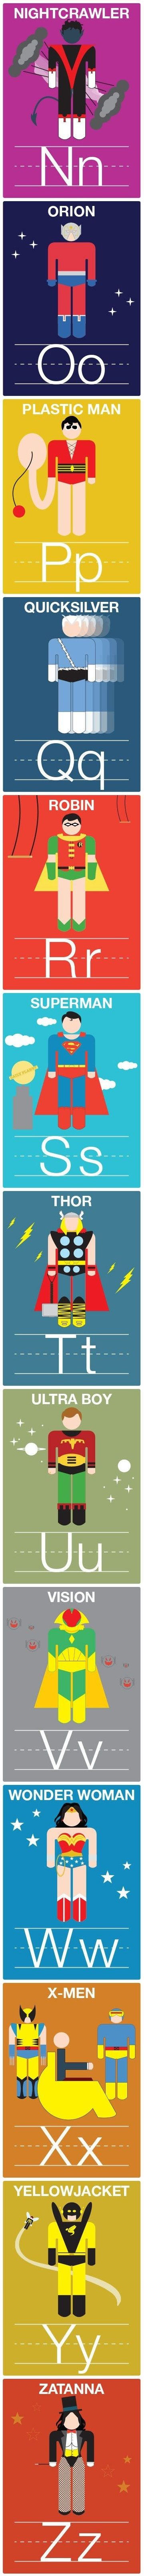 N-Z Superhero Alphabet Cards (P. Mizzey)                                                                                                                                                                                 More